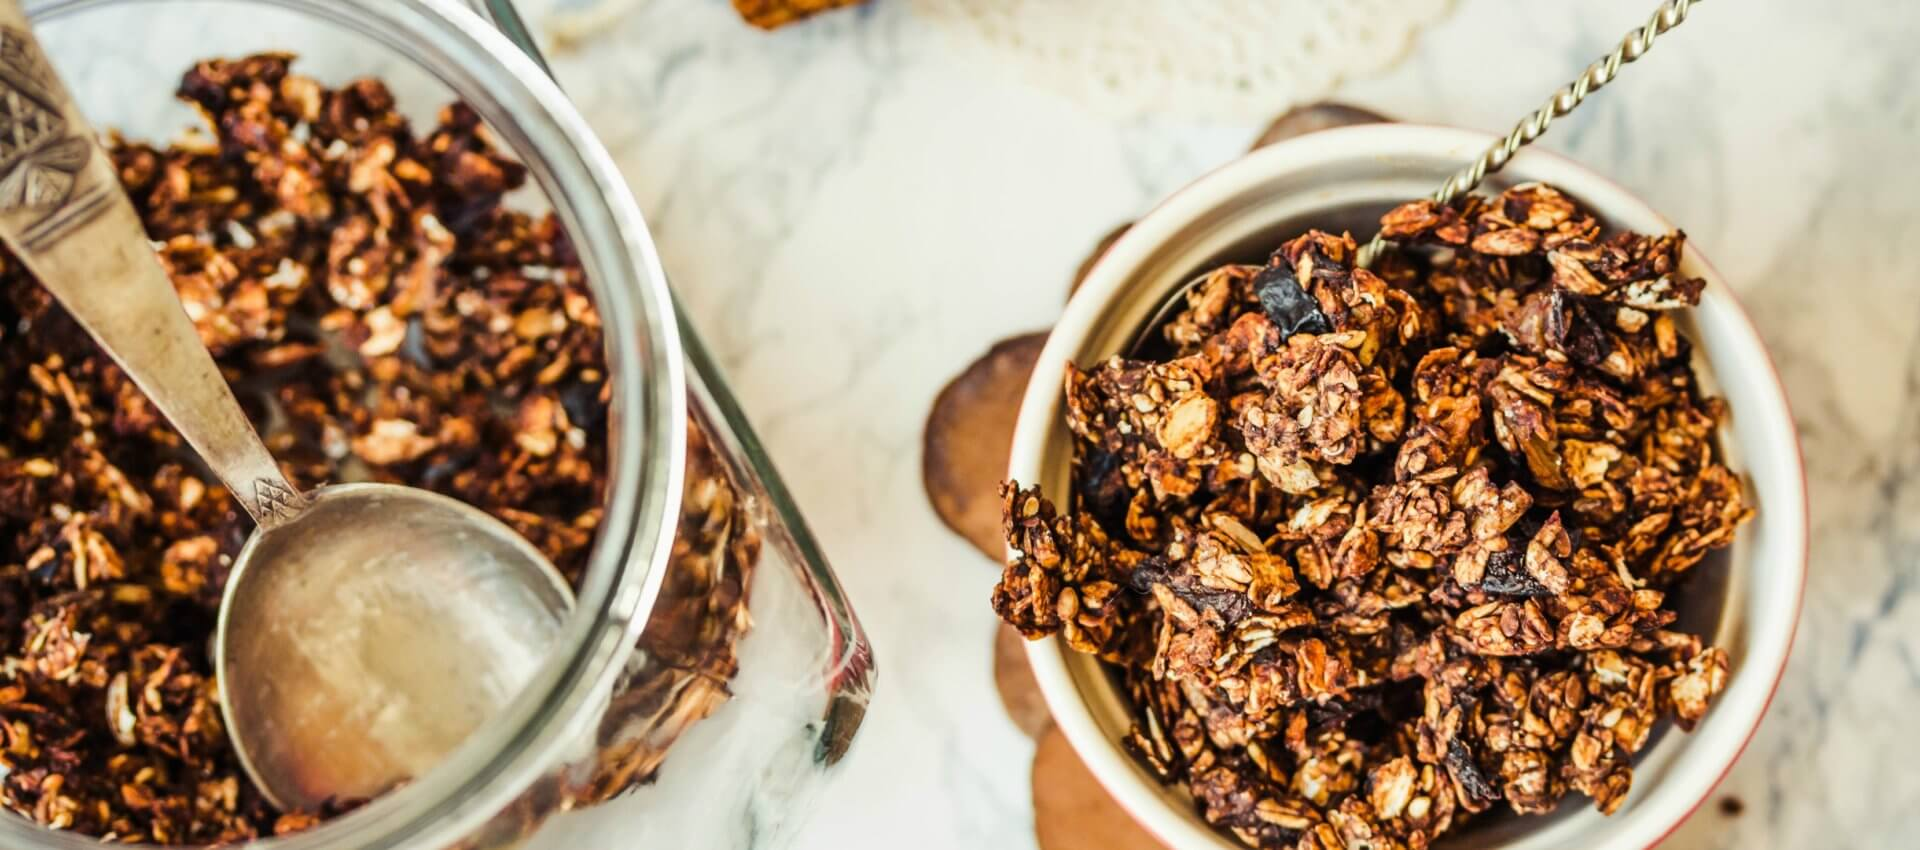 Chocolate brownie granola recipe using Do You Bake? Gourmet Brownie mix